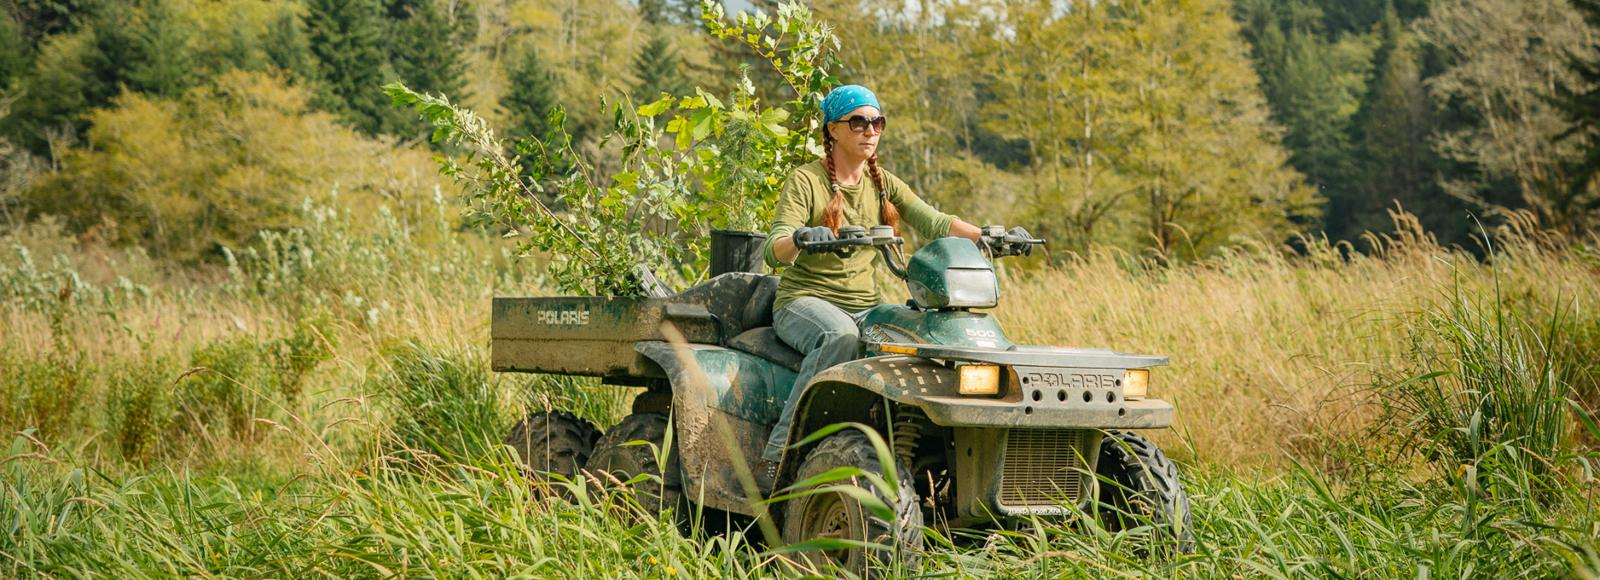 A woman in a blue bandana drives a four wheeler through tall grass with native plants in the back.